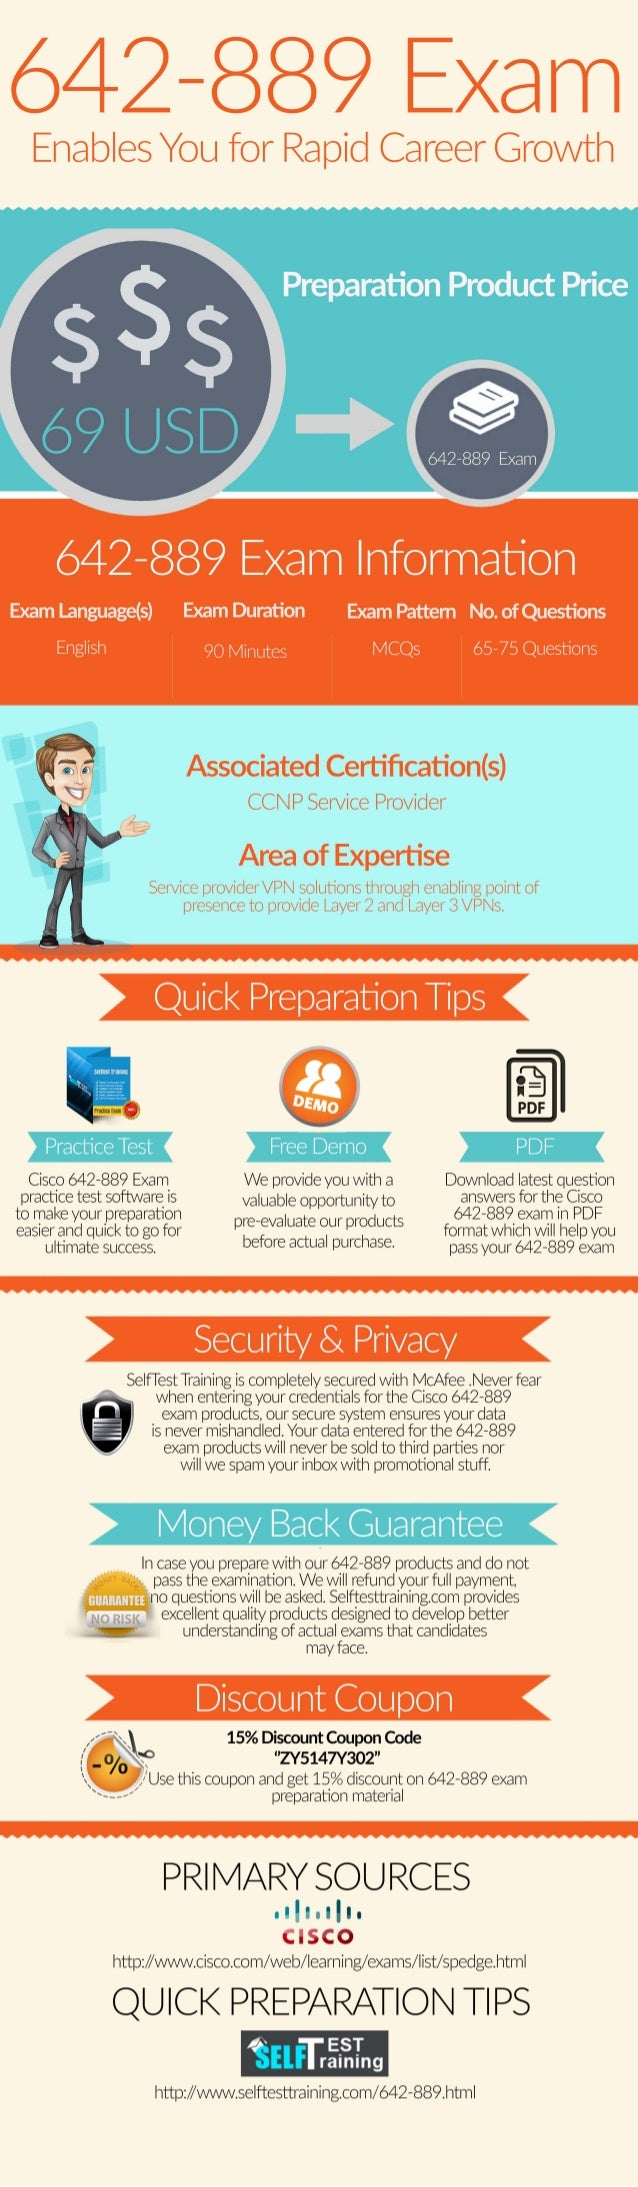 642-889 exam questions & practice tests [Infographic]